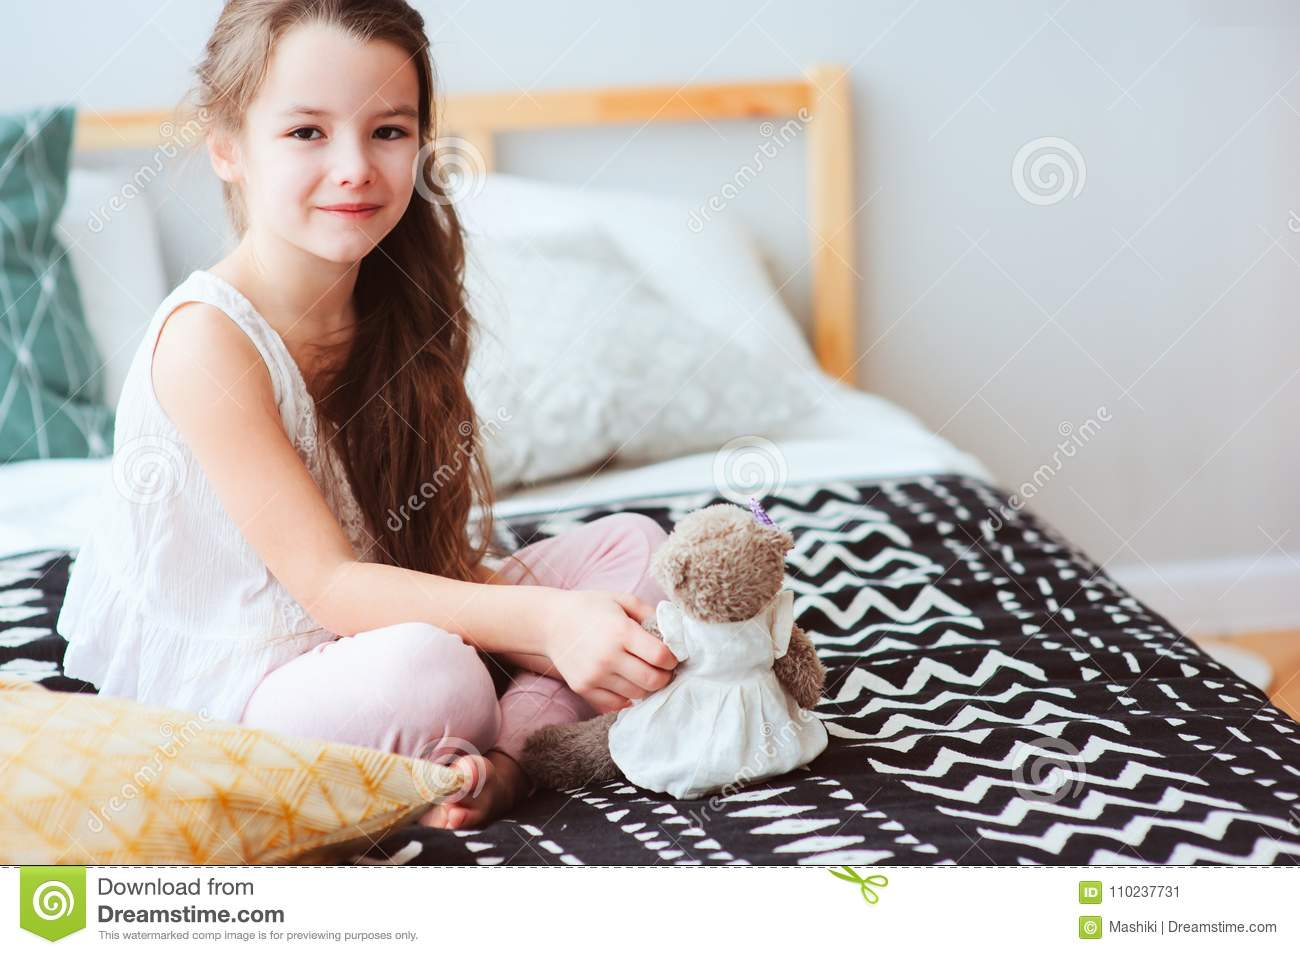 Cute happy child girl relaxing at home on the bed in her room in early morning